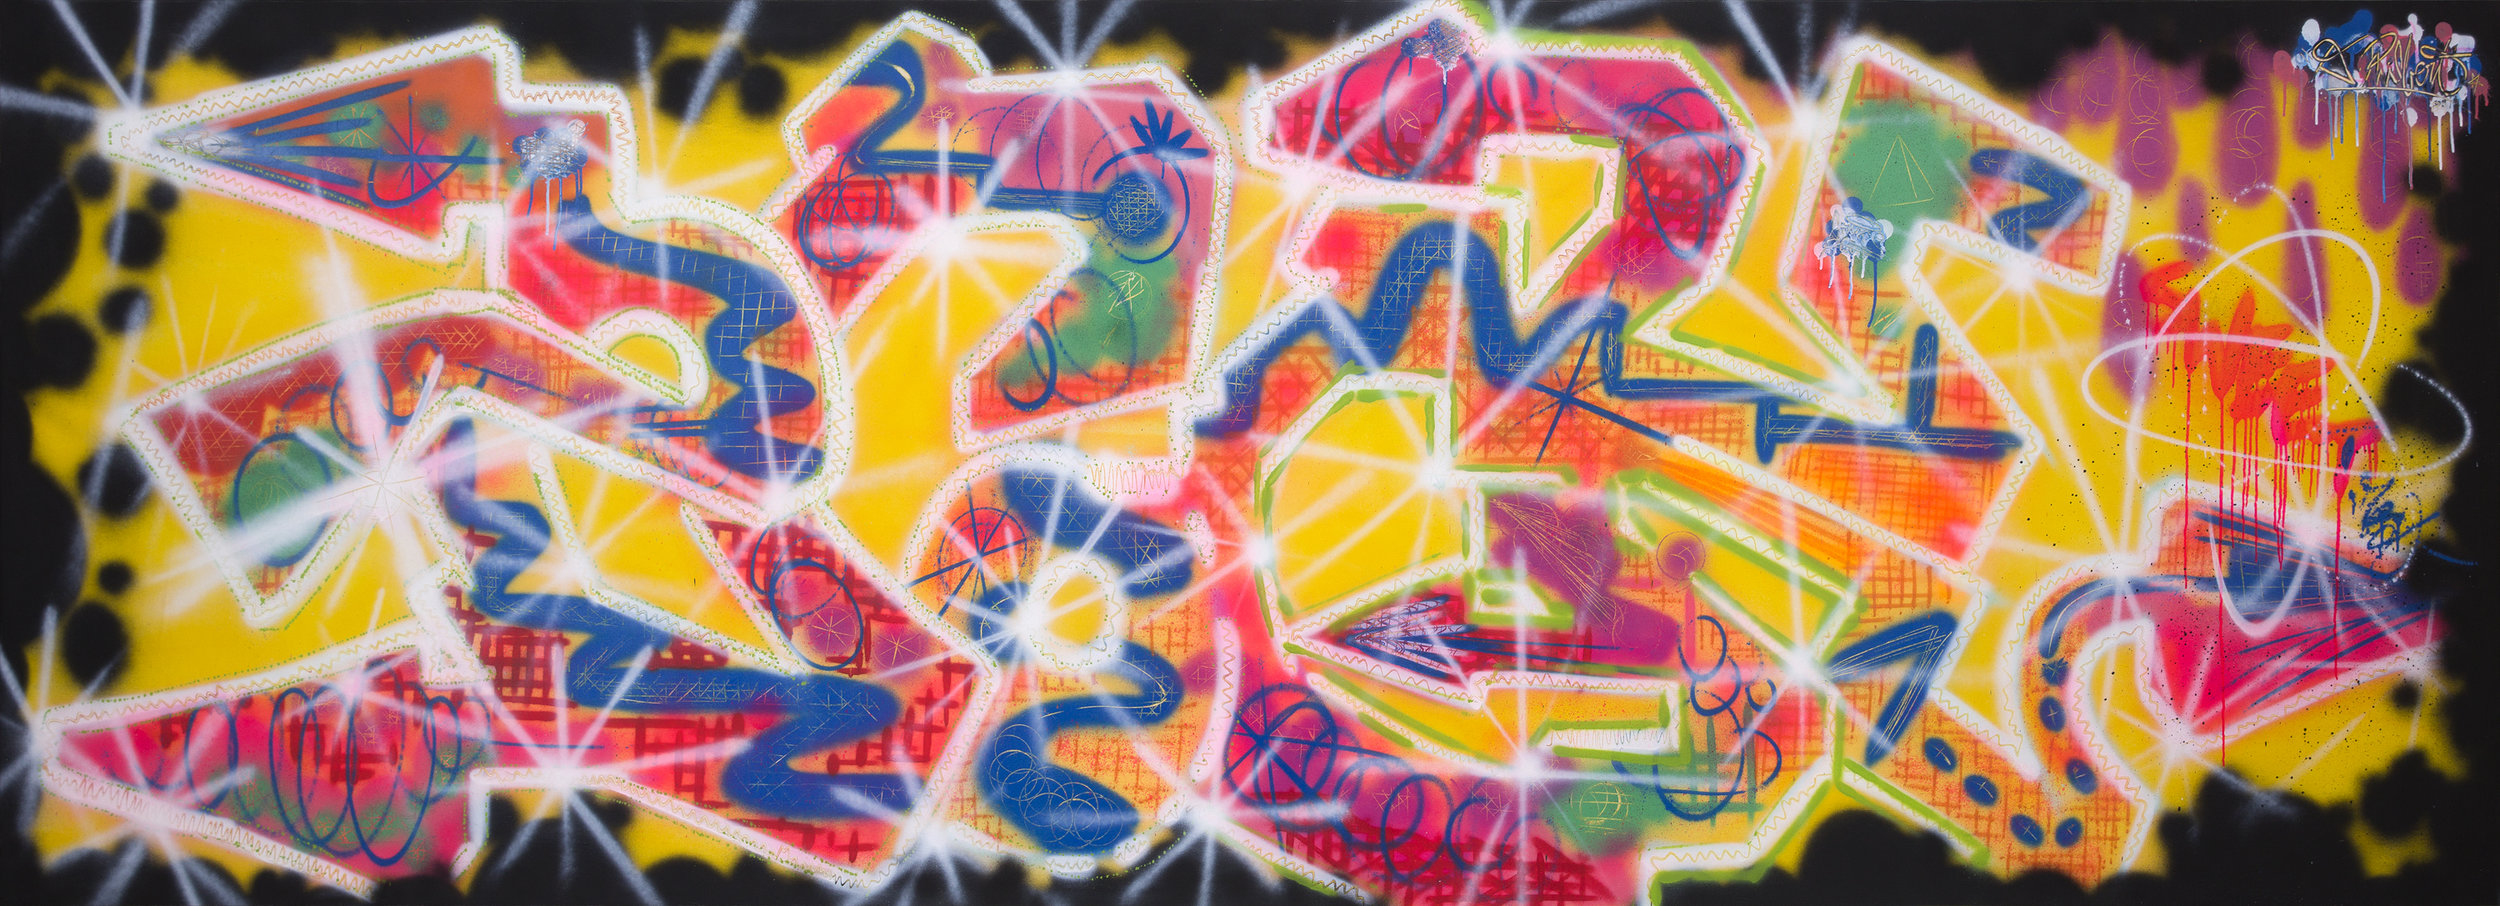 ERO   Sweet treat  1984 Spray paint on canvas 124 x 342 cm